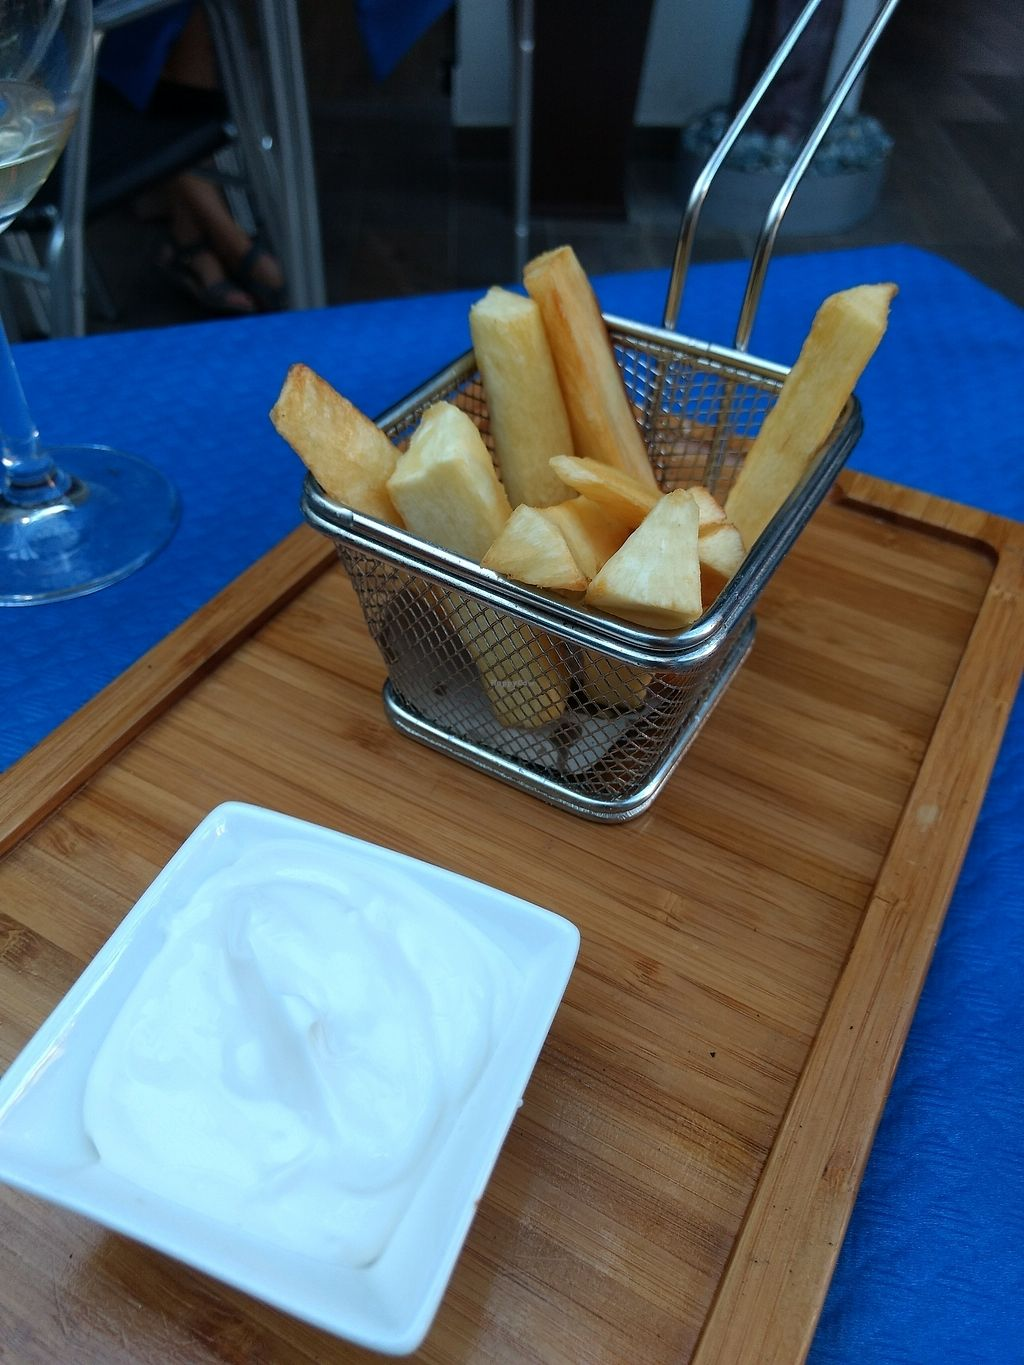 """Photo of Verdeando  by <a href=""""/members/profile/craigmc"""">craigmc</a> <br/>yuca fries <br/> July 9, 2017  - <a href='/contact/abuse/image/61415/278484'>Report</a>"""